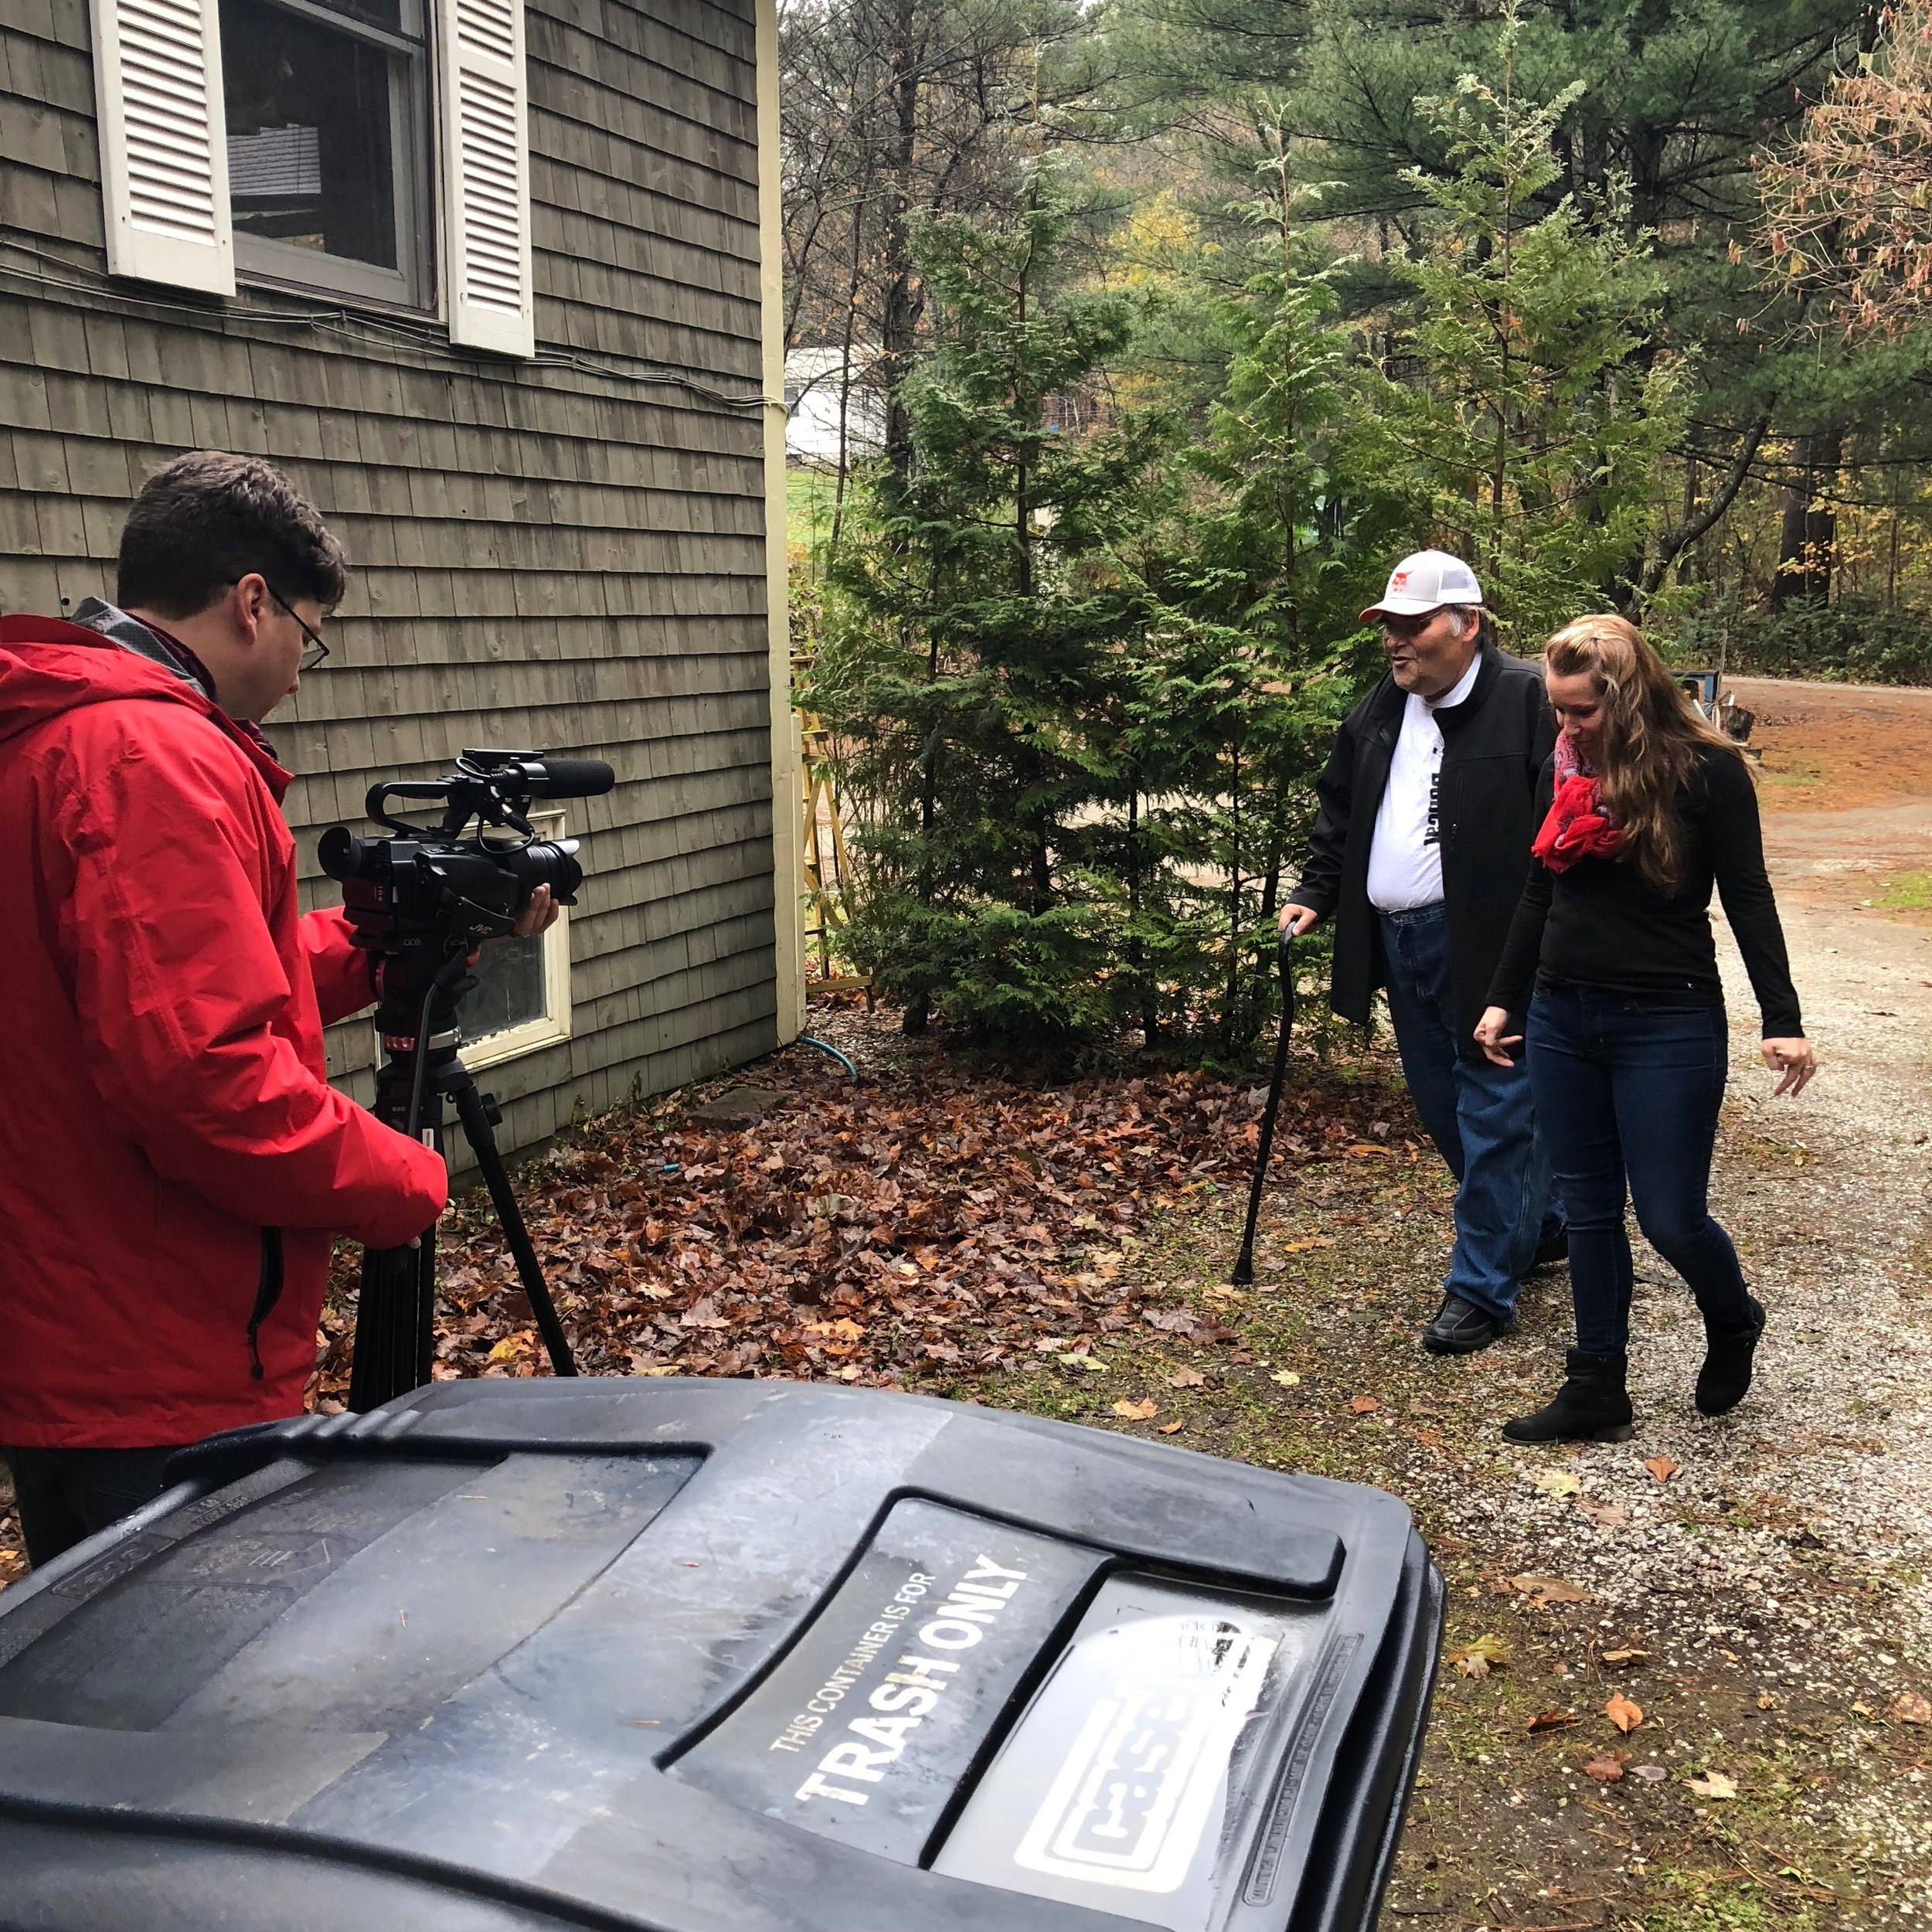 In early November, we worked with  mychamplainvalley.com  to film a commercial promoting the hard work of our Shared Living Providers.